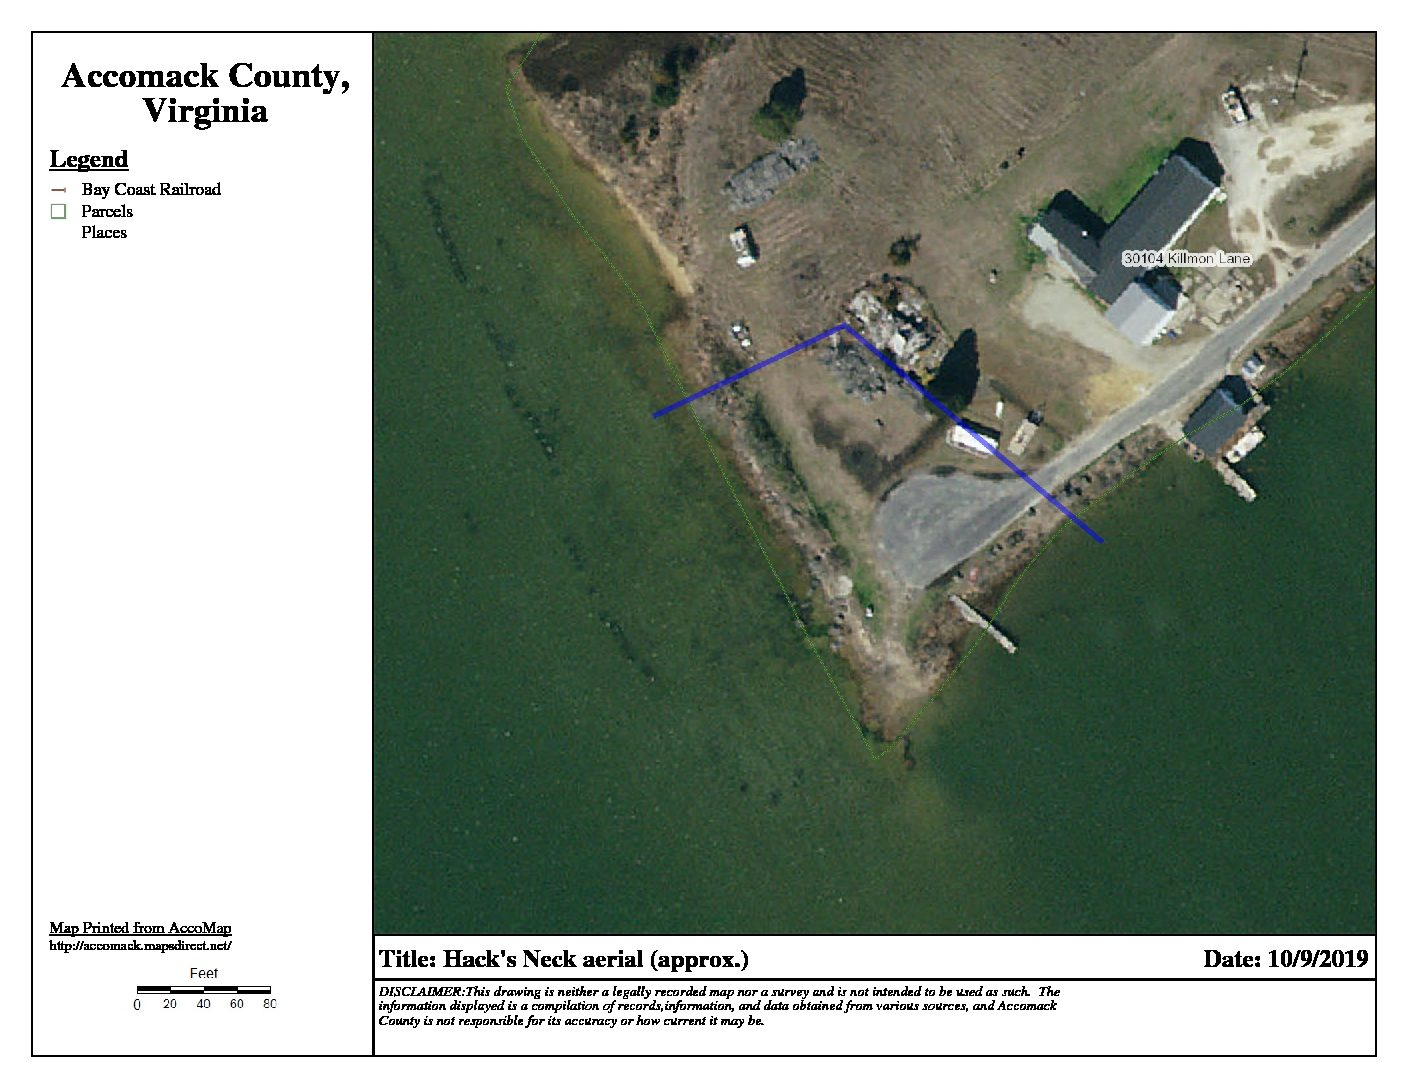 Accomack County Supervisors pass resolution to acquire Hacks Neck Ramp property for public use